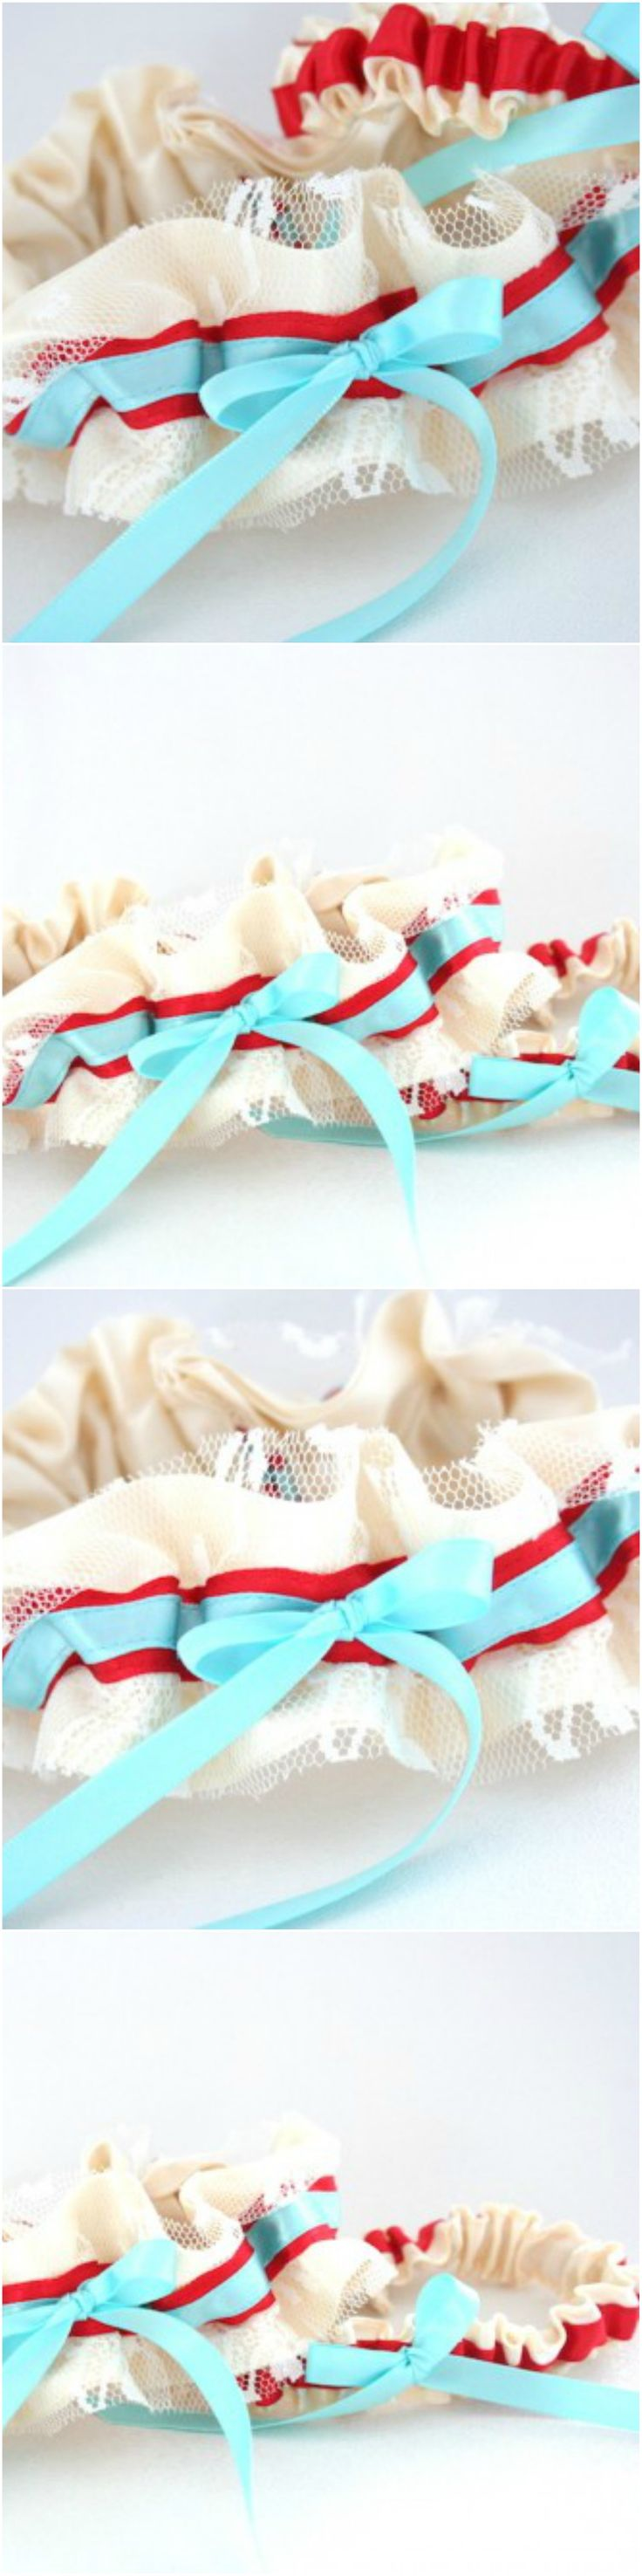 Custom ivory lace, turquoise and red wedding garter-by The Garter Girl